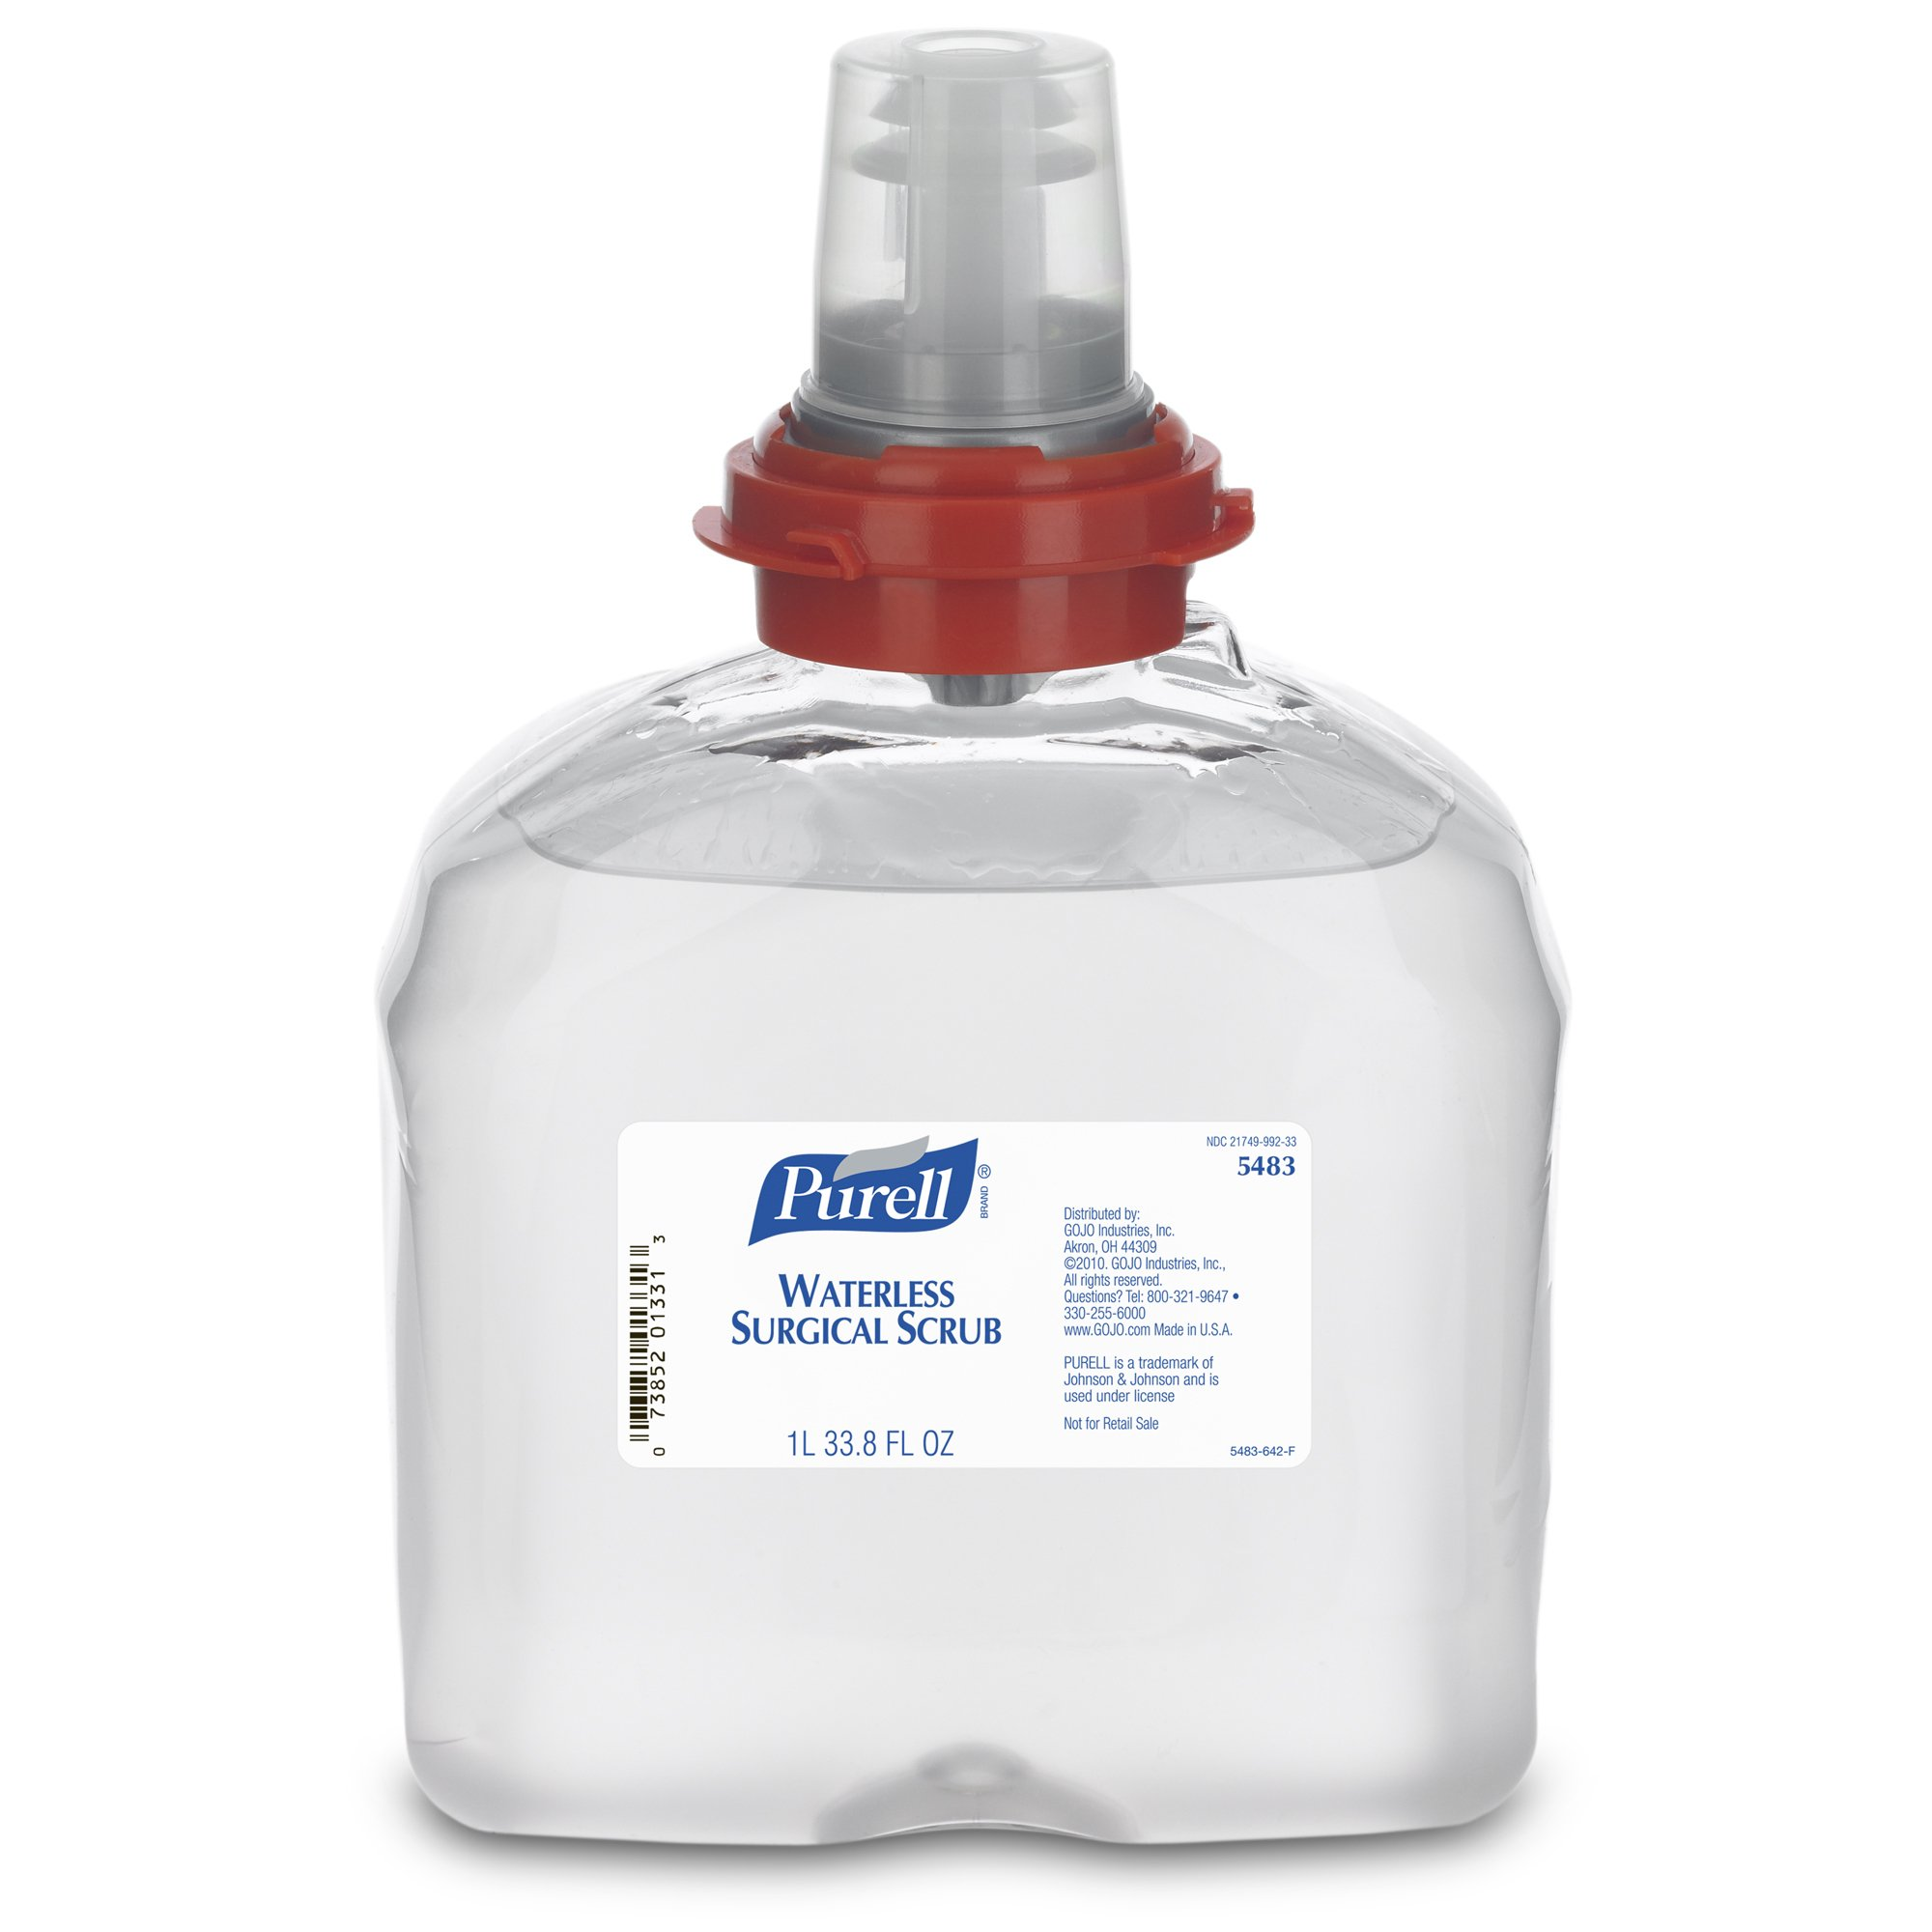 PURELL TFX Waterless Surgical Scrub, Fragrance Free, 1000 mL Scrub Refill for PURELL TFX Surgical Scrub Touch-Free Dispenser (Case of 4) - 5483-04